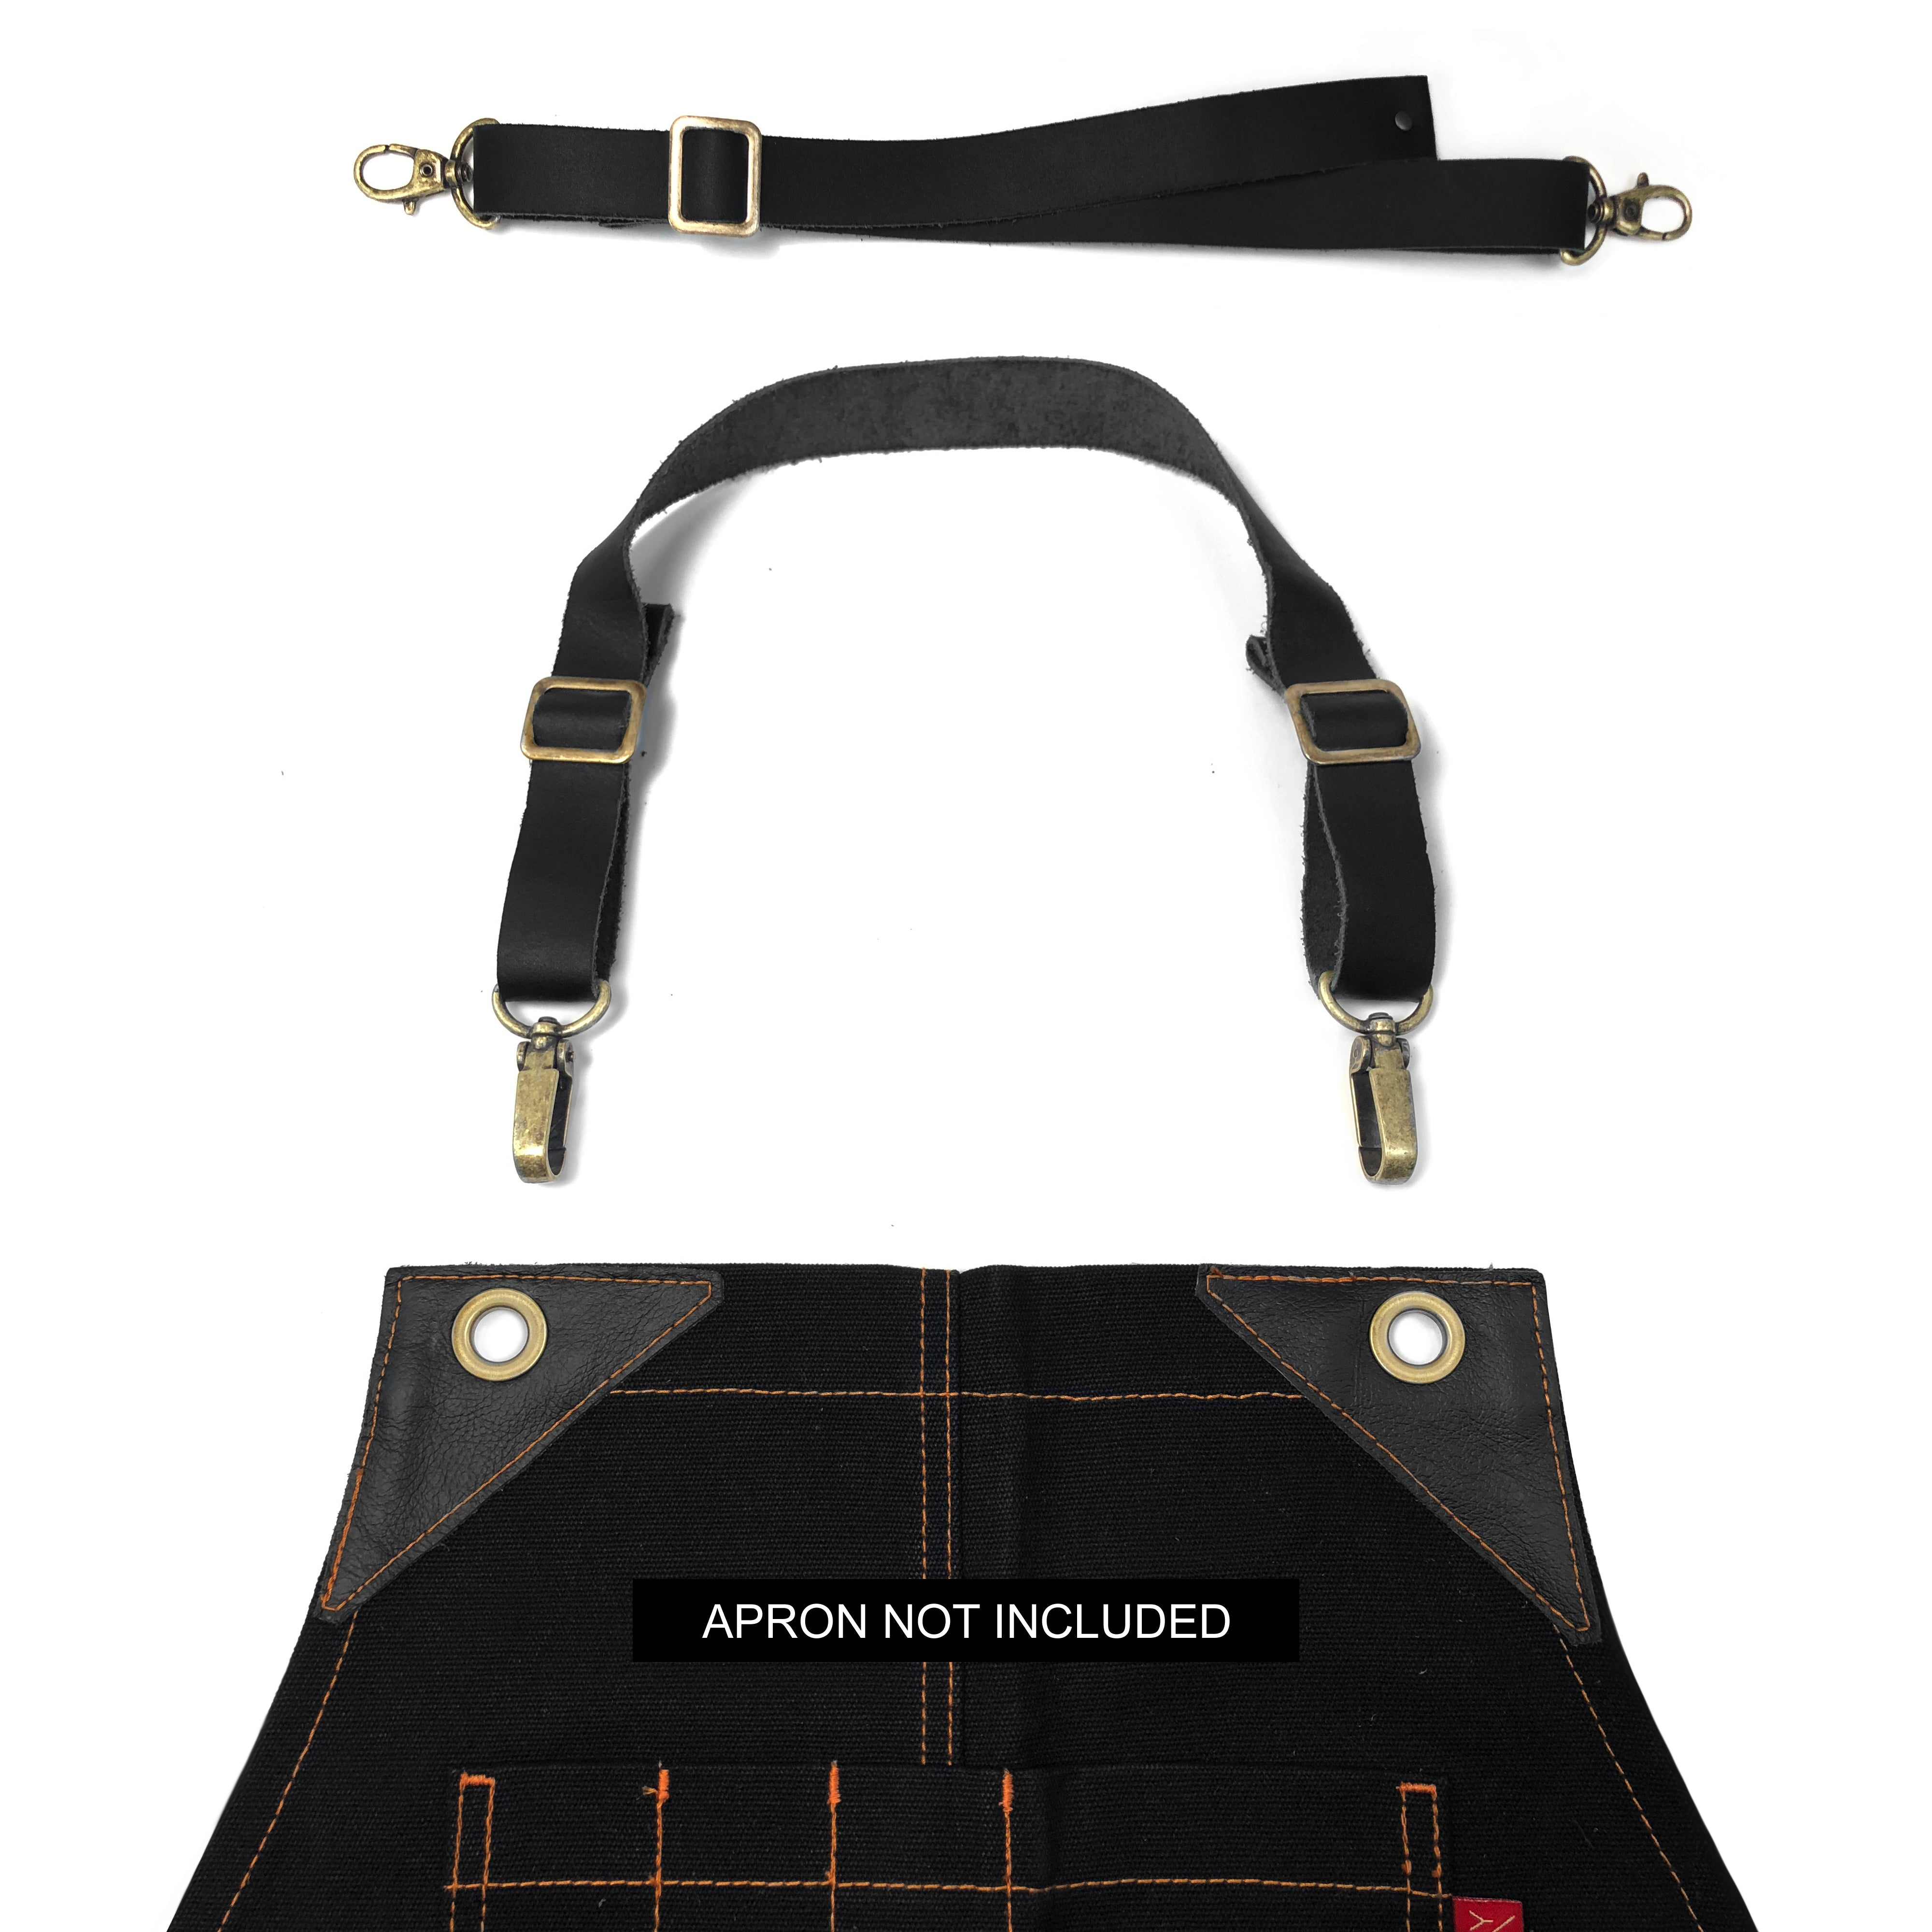 Leather Straps - Over-the-neck - Black Leather